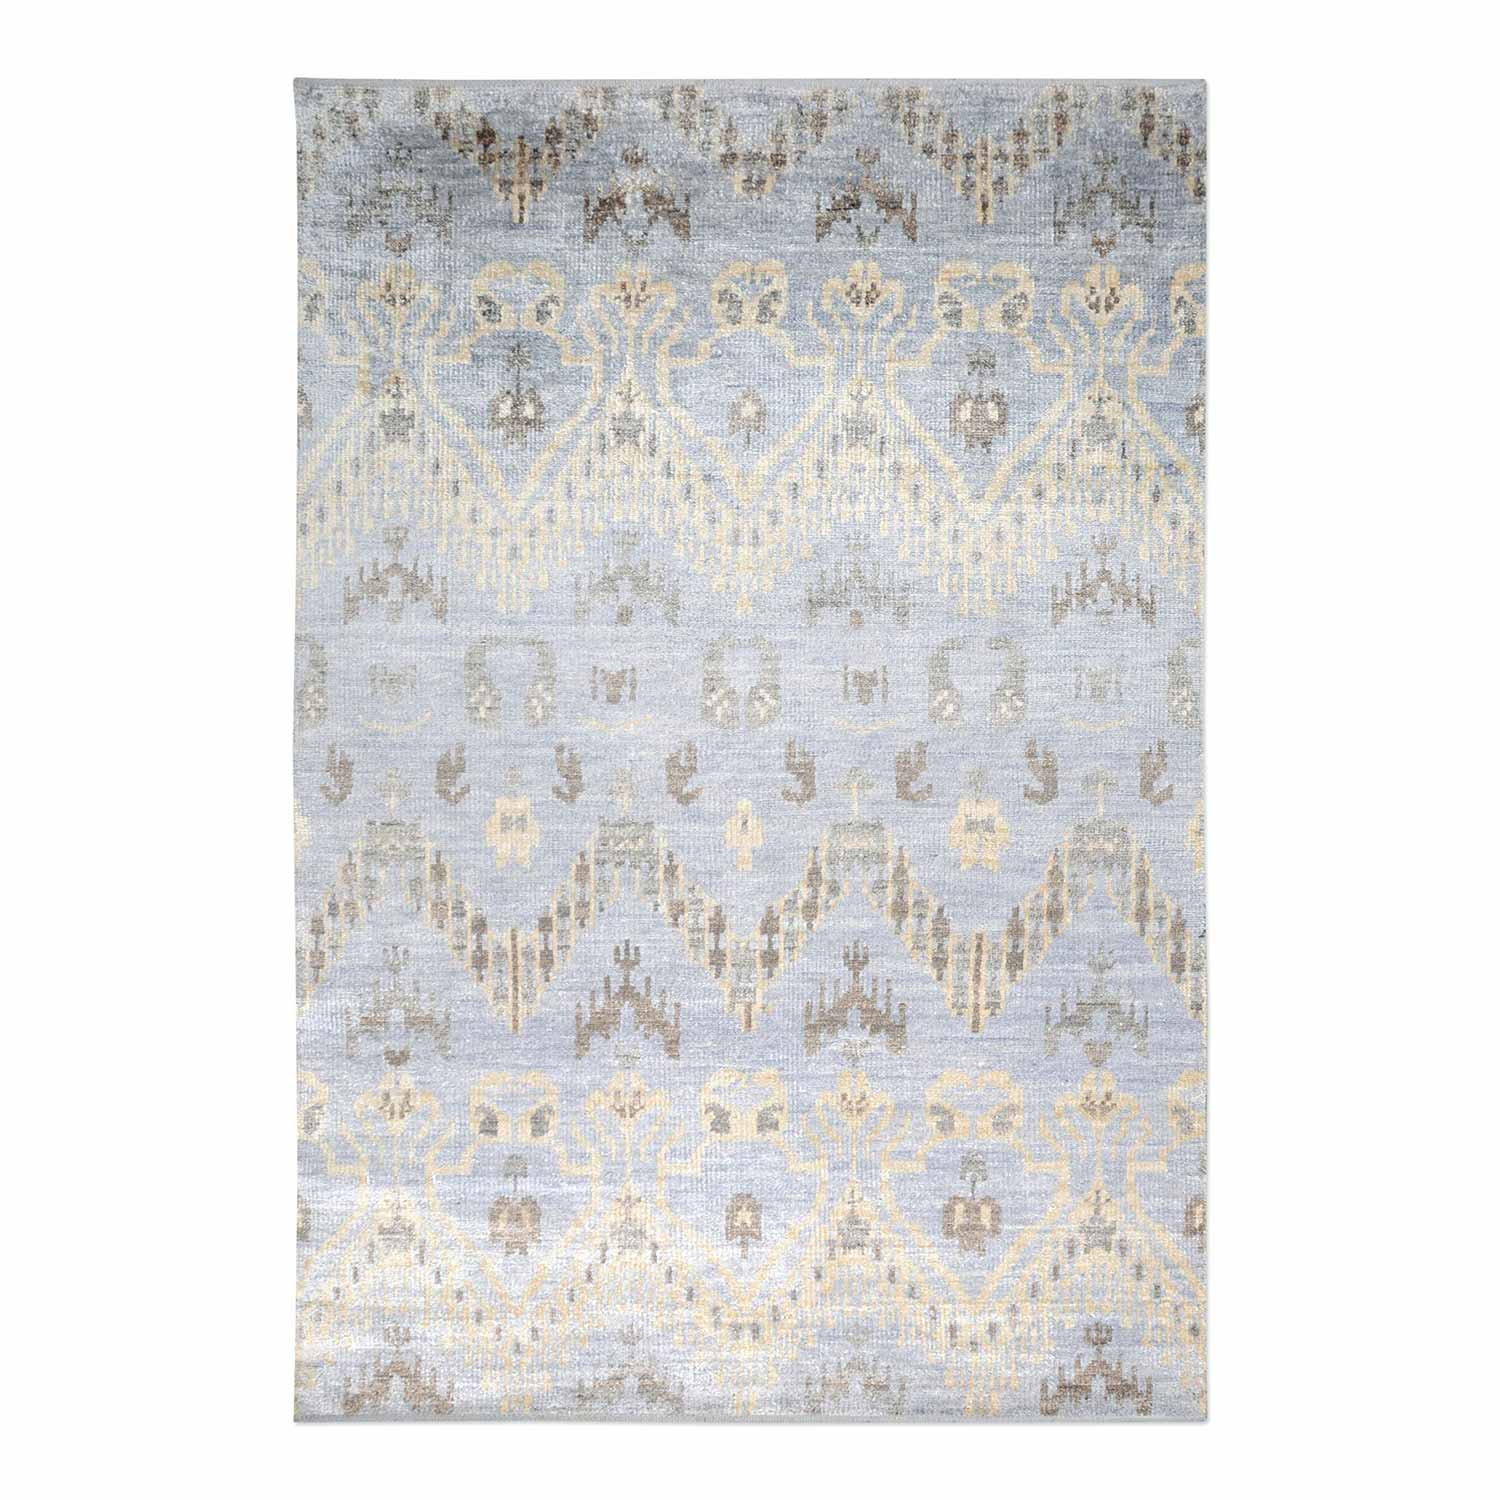 Uttermost Madeira Pale 8 x 10 Rug - Blue